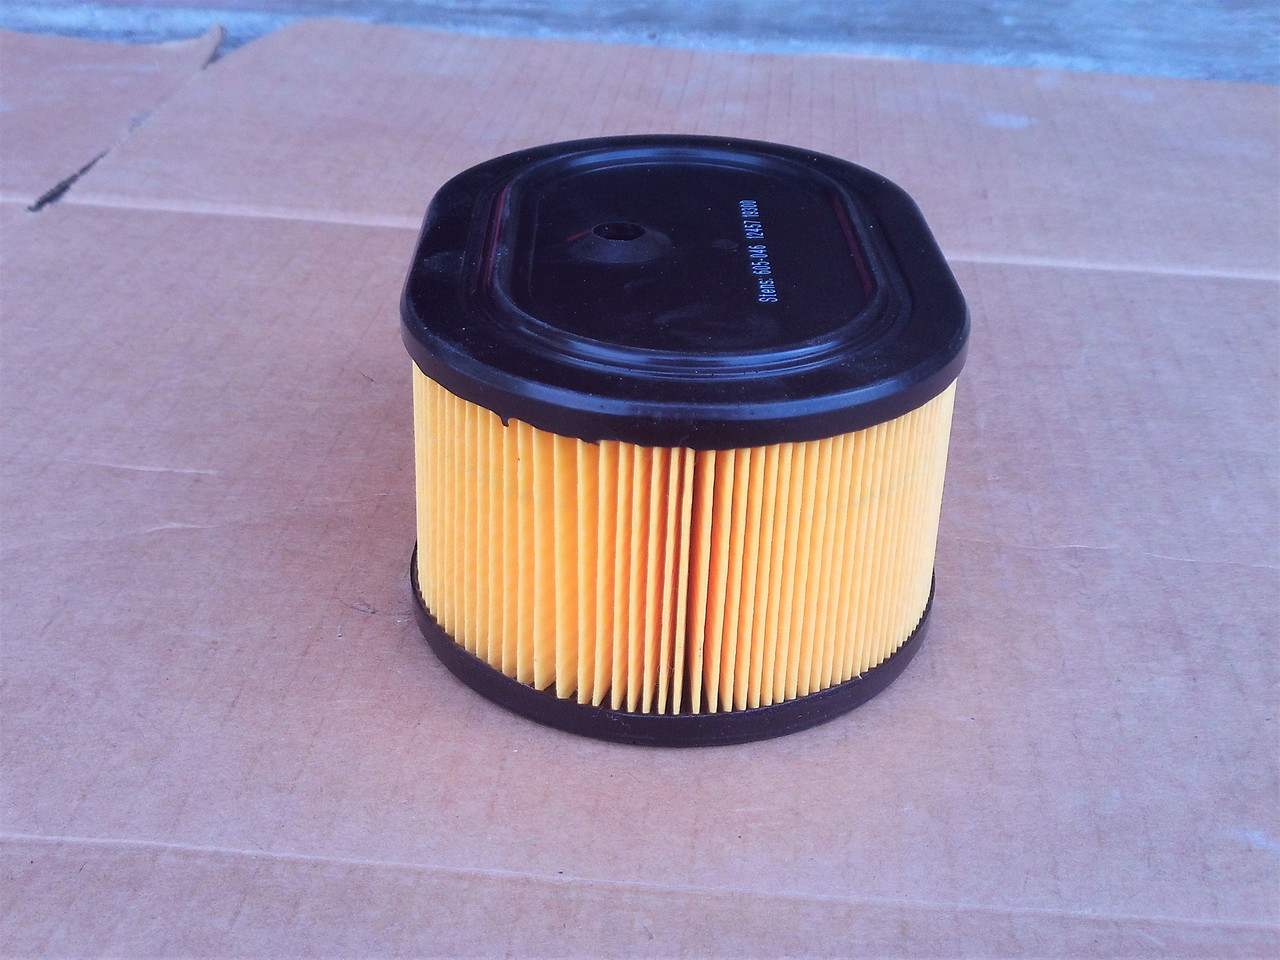 Air Filter for Partner K950, 506231801, 506231802, 506231803, 578120701 chainsaw, ring saw, cut off saw